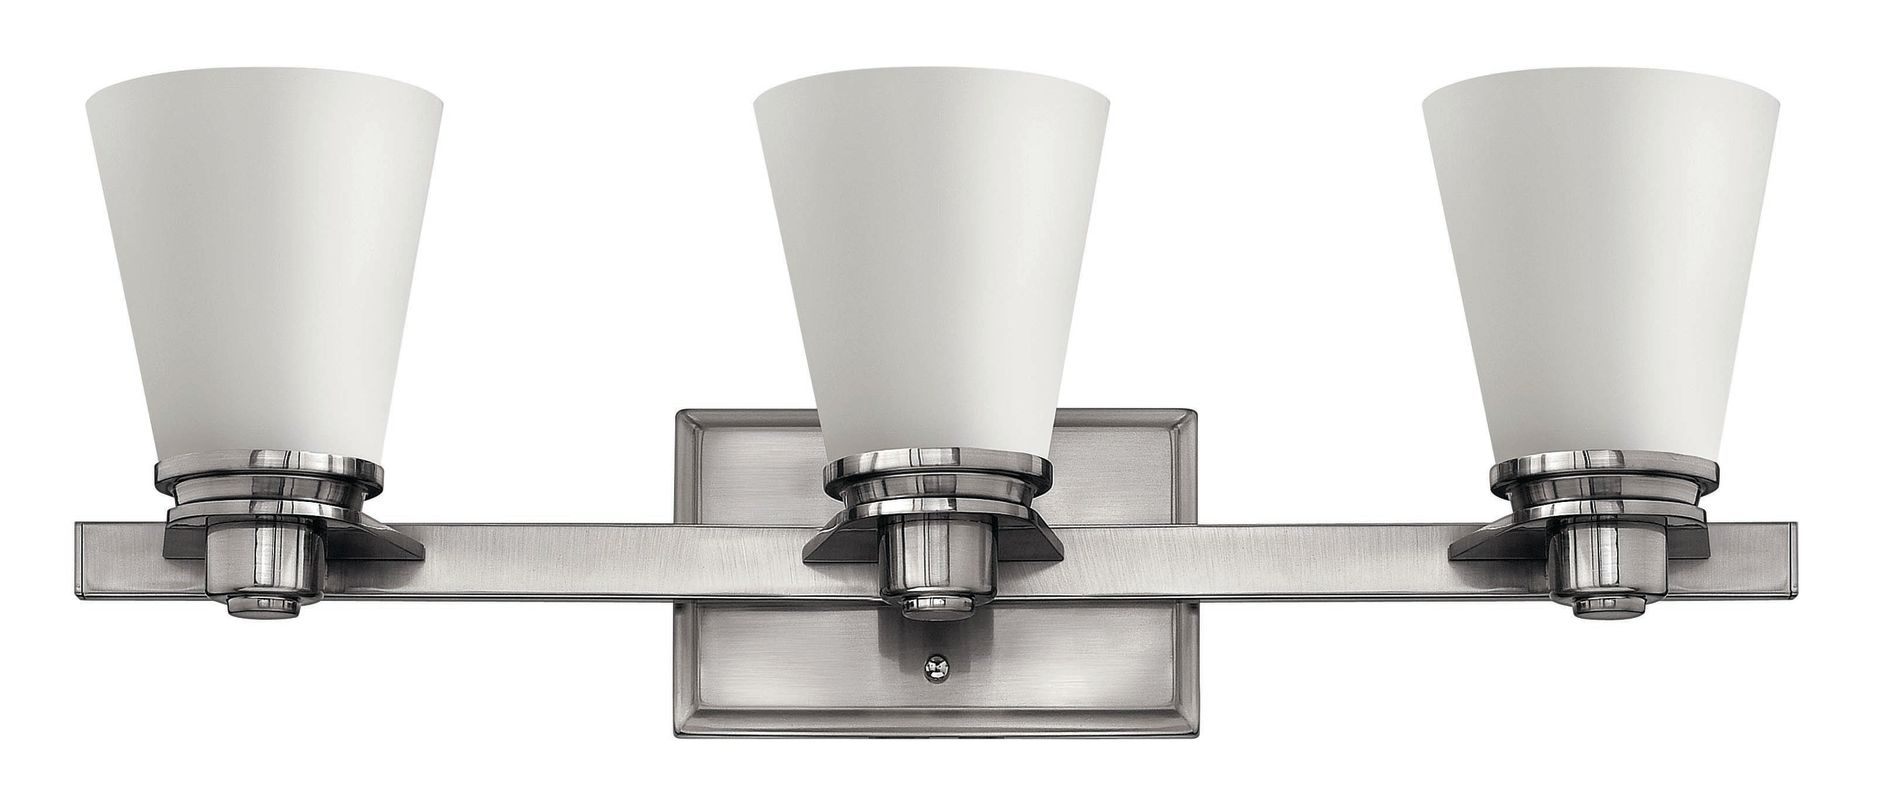 Hinkley lighting 5553bn gu24 brushed nickel 3 light title for Hinkley bathroom vanity lighting